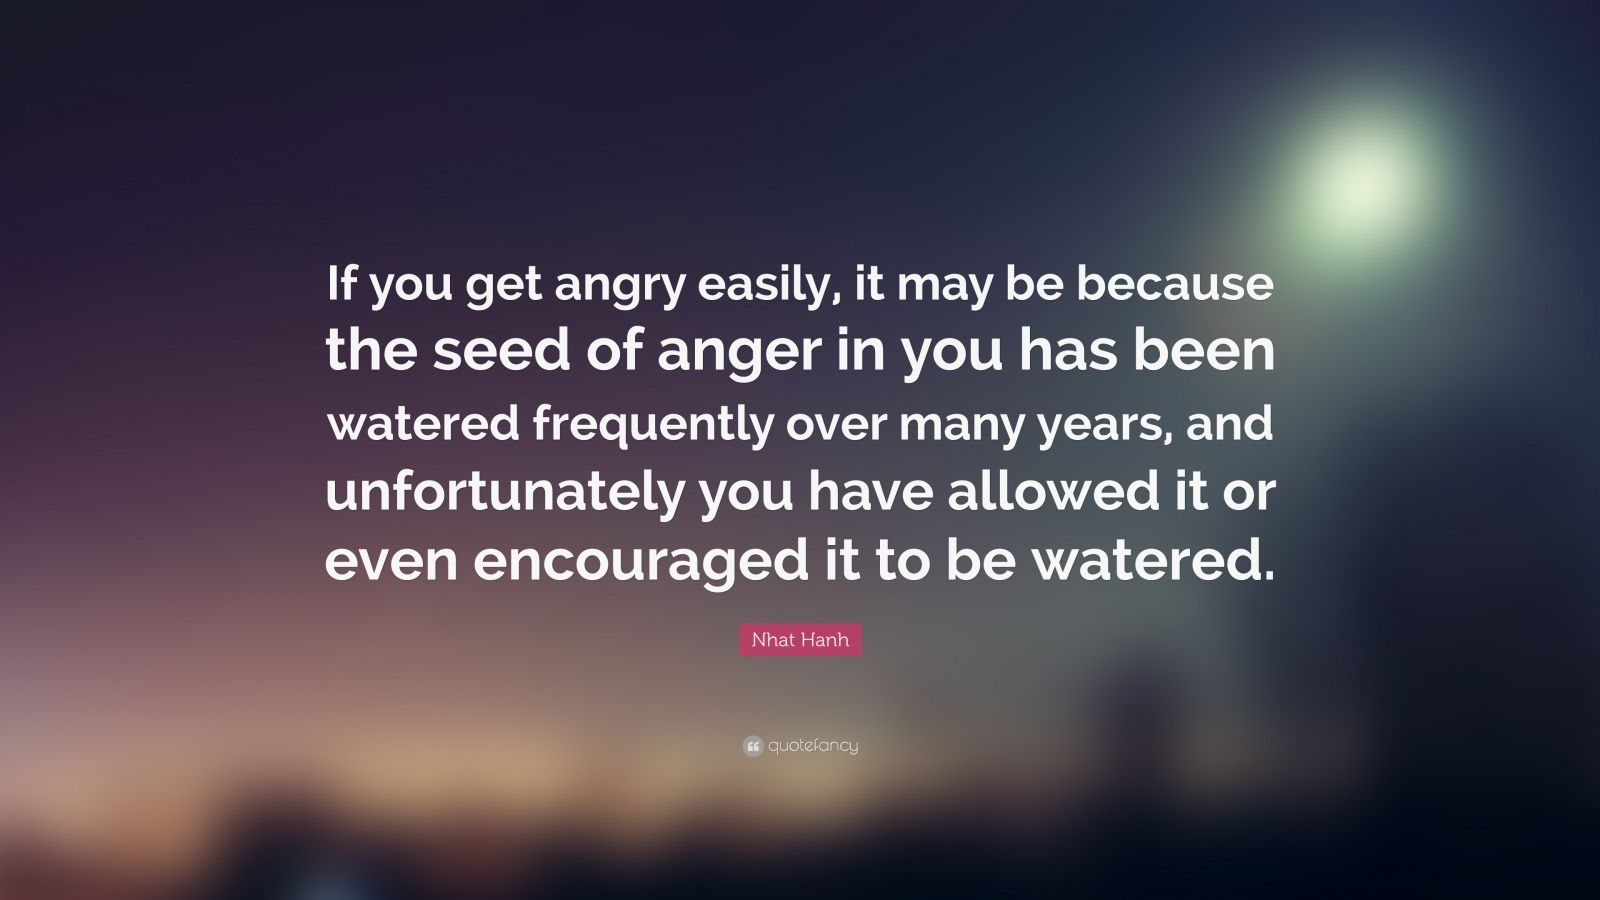 "Nhat Hanh Quote: ""If you get angry easily, it may be because the seed of anger in you has been watered frequently over many years, and unfortunately you have allowed it or even encouraged it to be watered."""